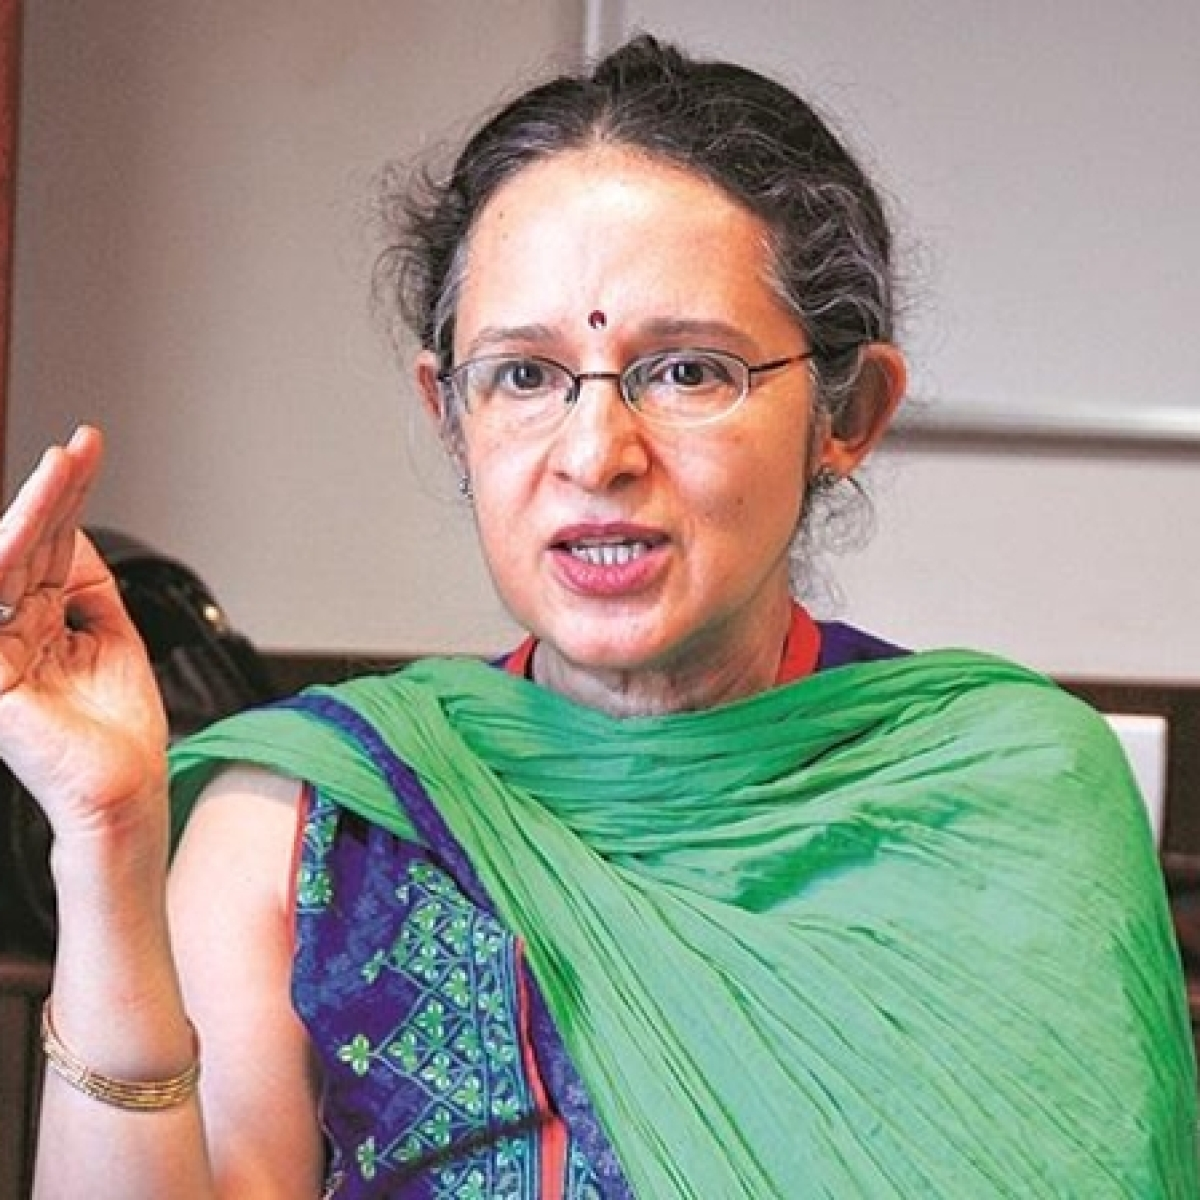 Budget lacked vision, admits PM's economic aide Ashima Goyal